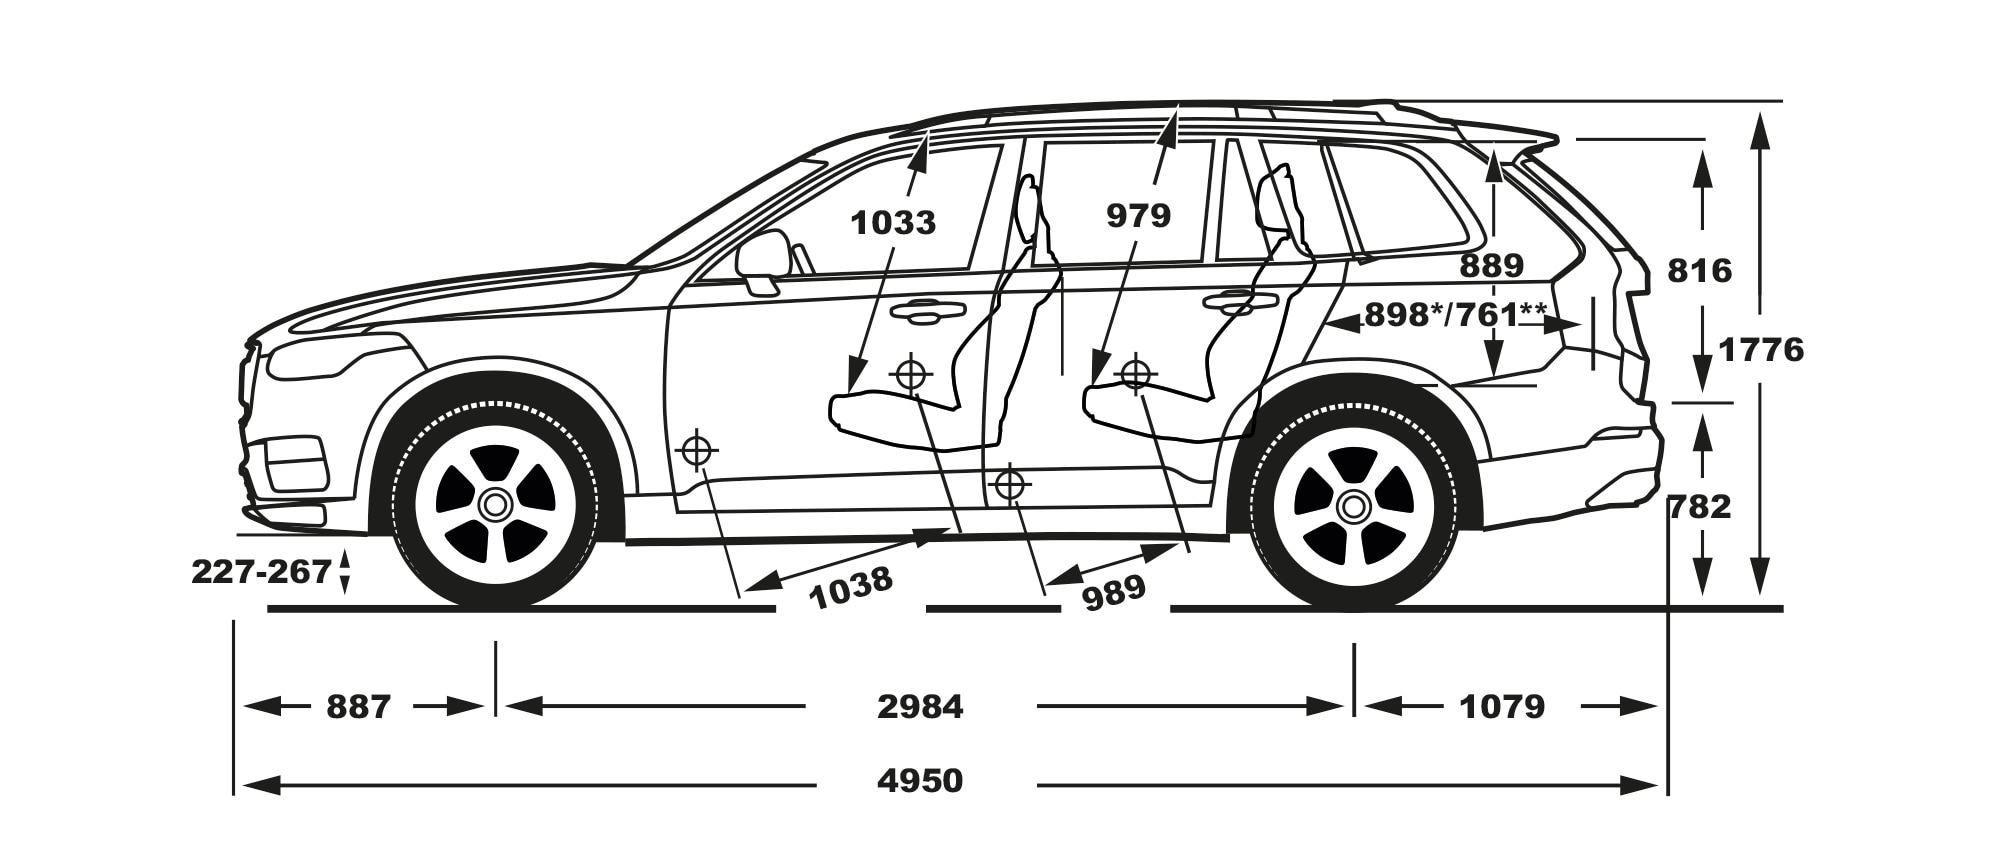 XC90 side view of dimensions